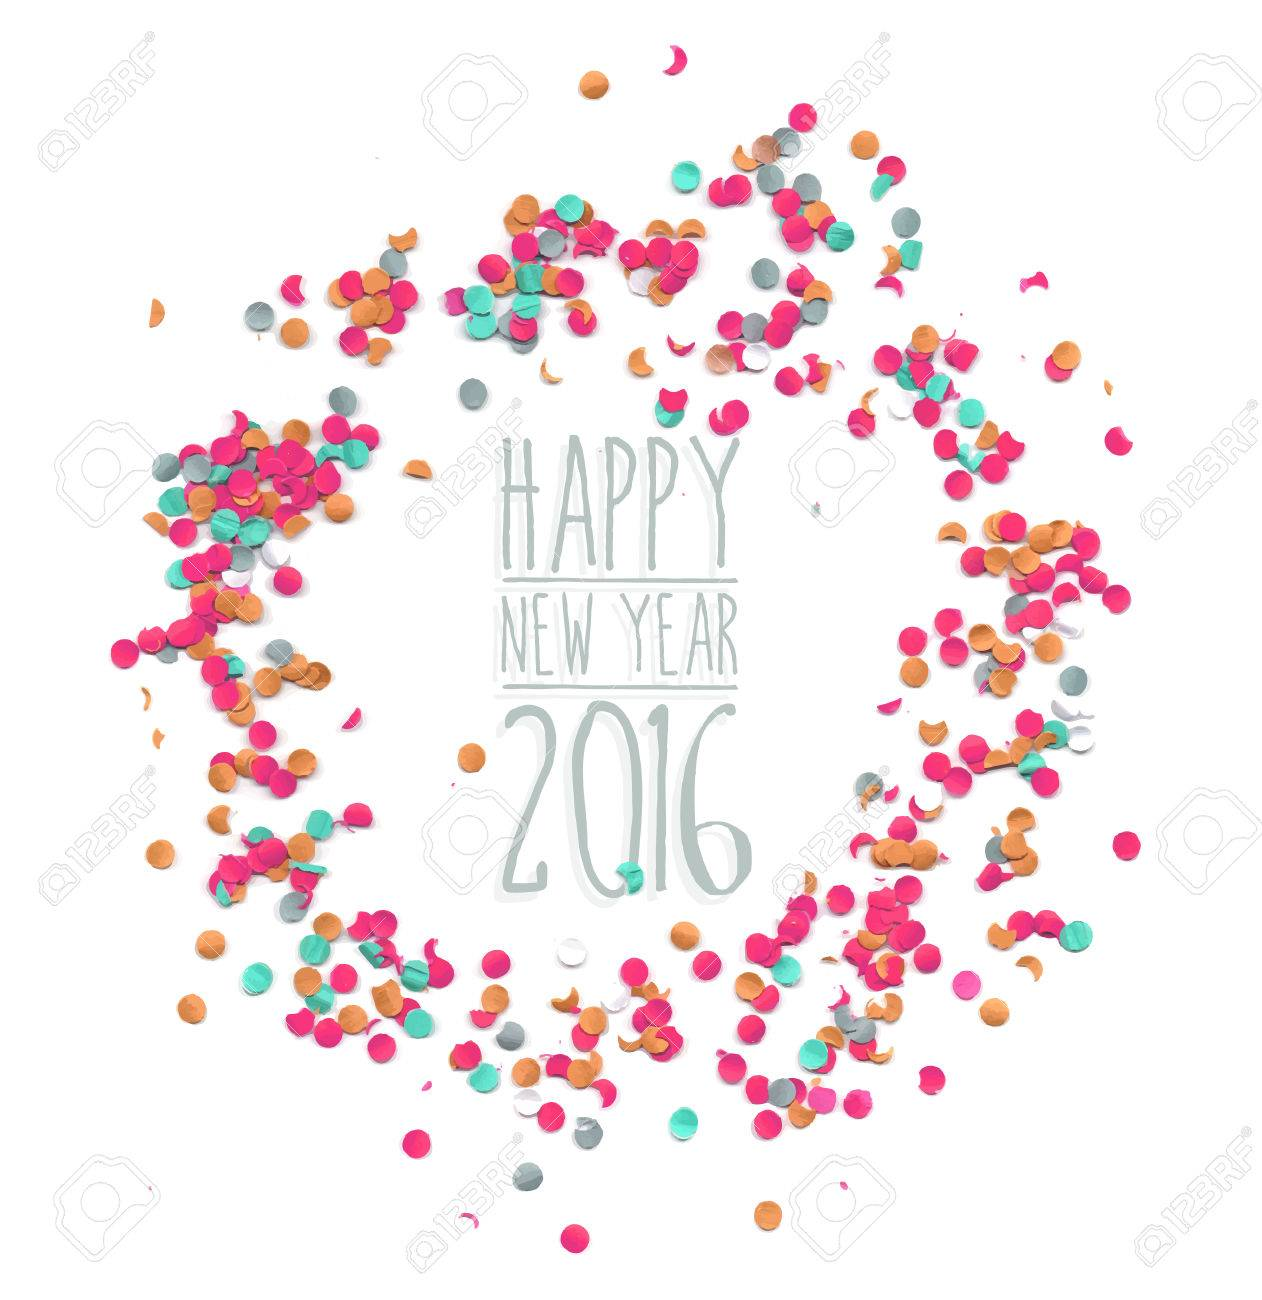 happy new year celebration 2016 party confetti template happy new year celebration 2016 party confetti template background ideal for holiday greeting card